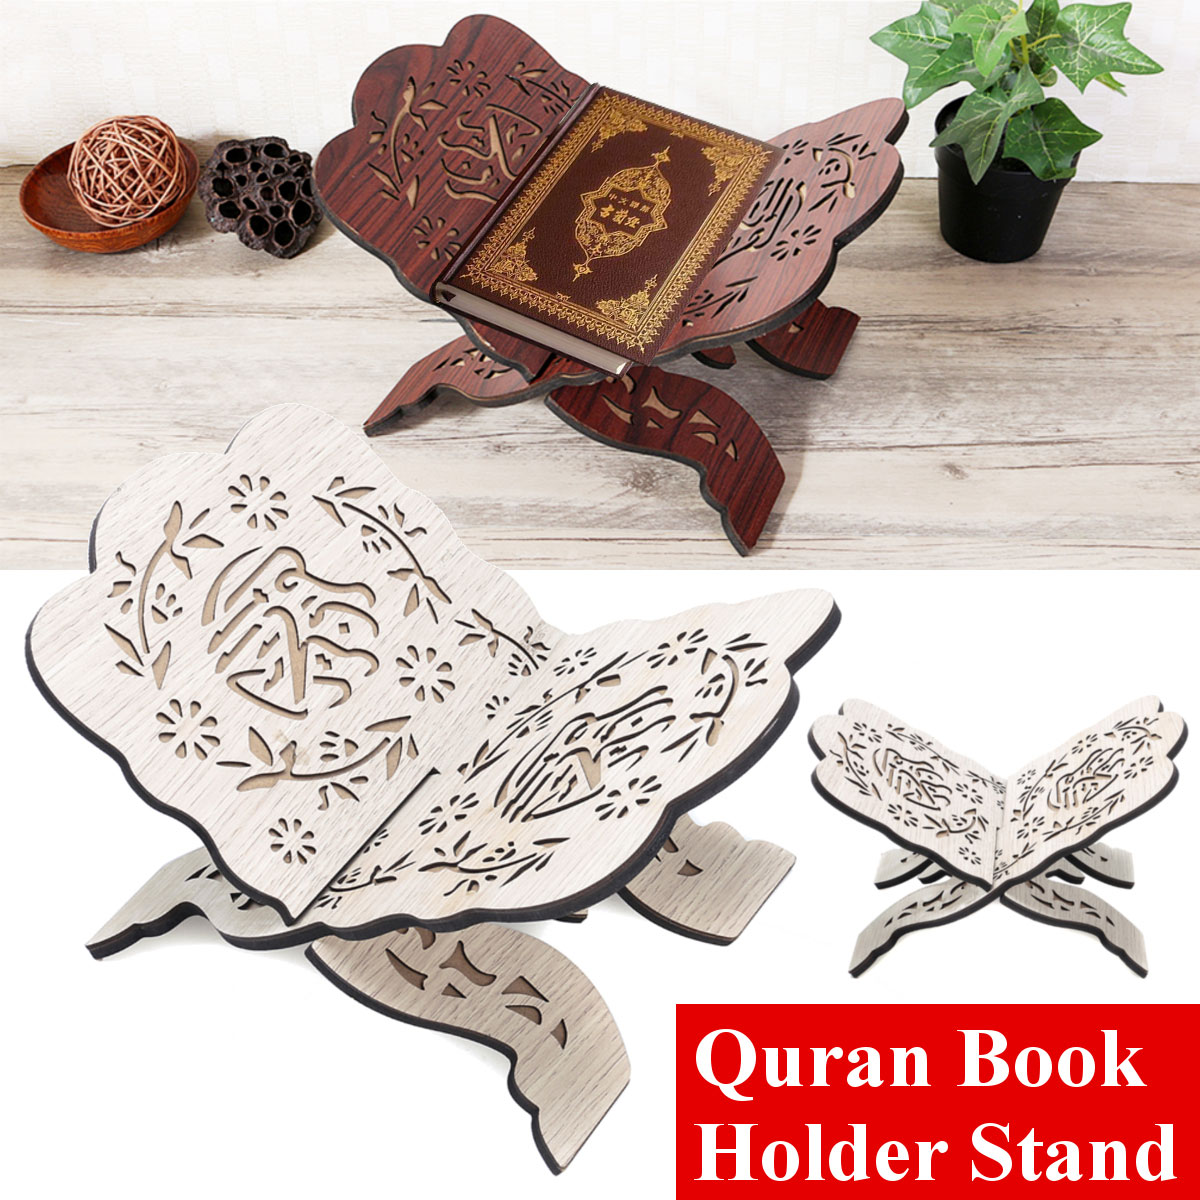 28x20x15cm Quran Muslim Wooden Book Stand Holder Decorative Shelf Removable Ramadan Allah Islamic Gift Handmade Book Decoration